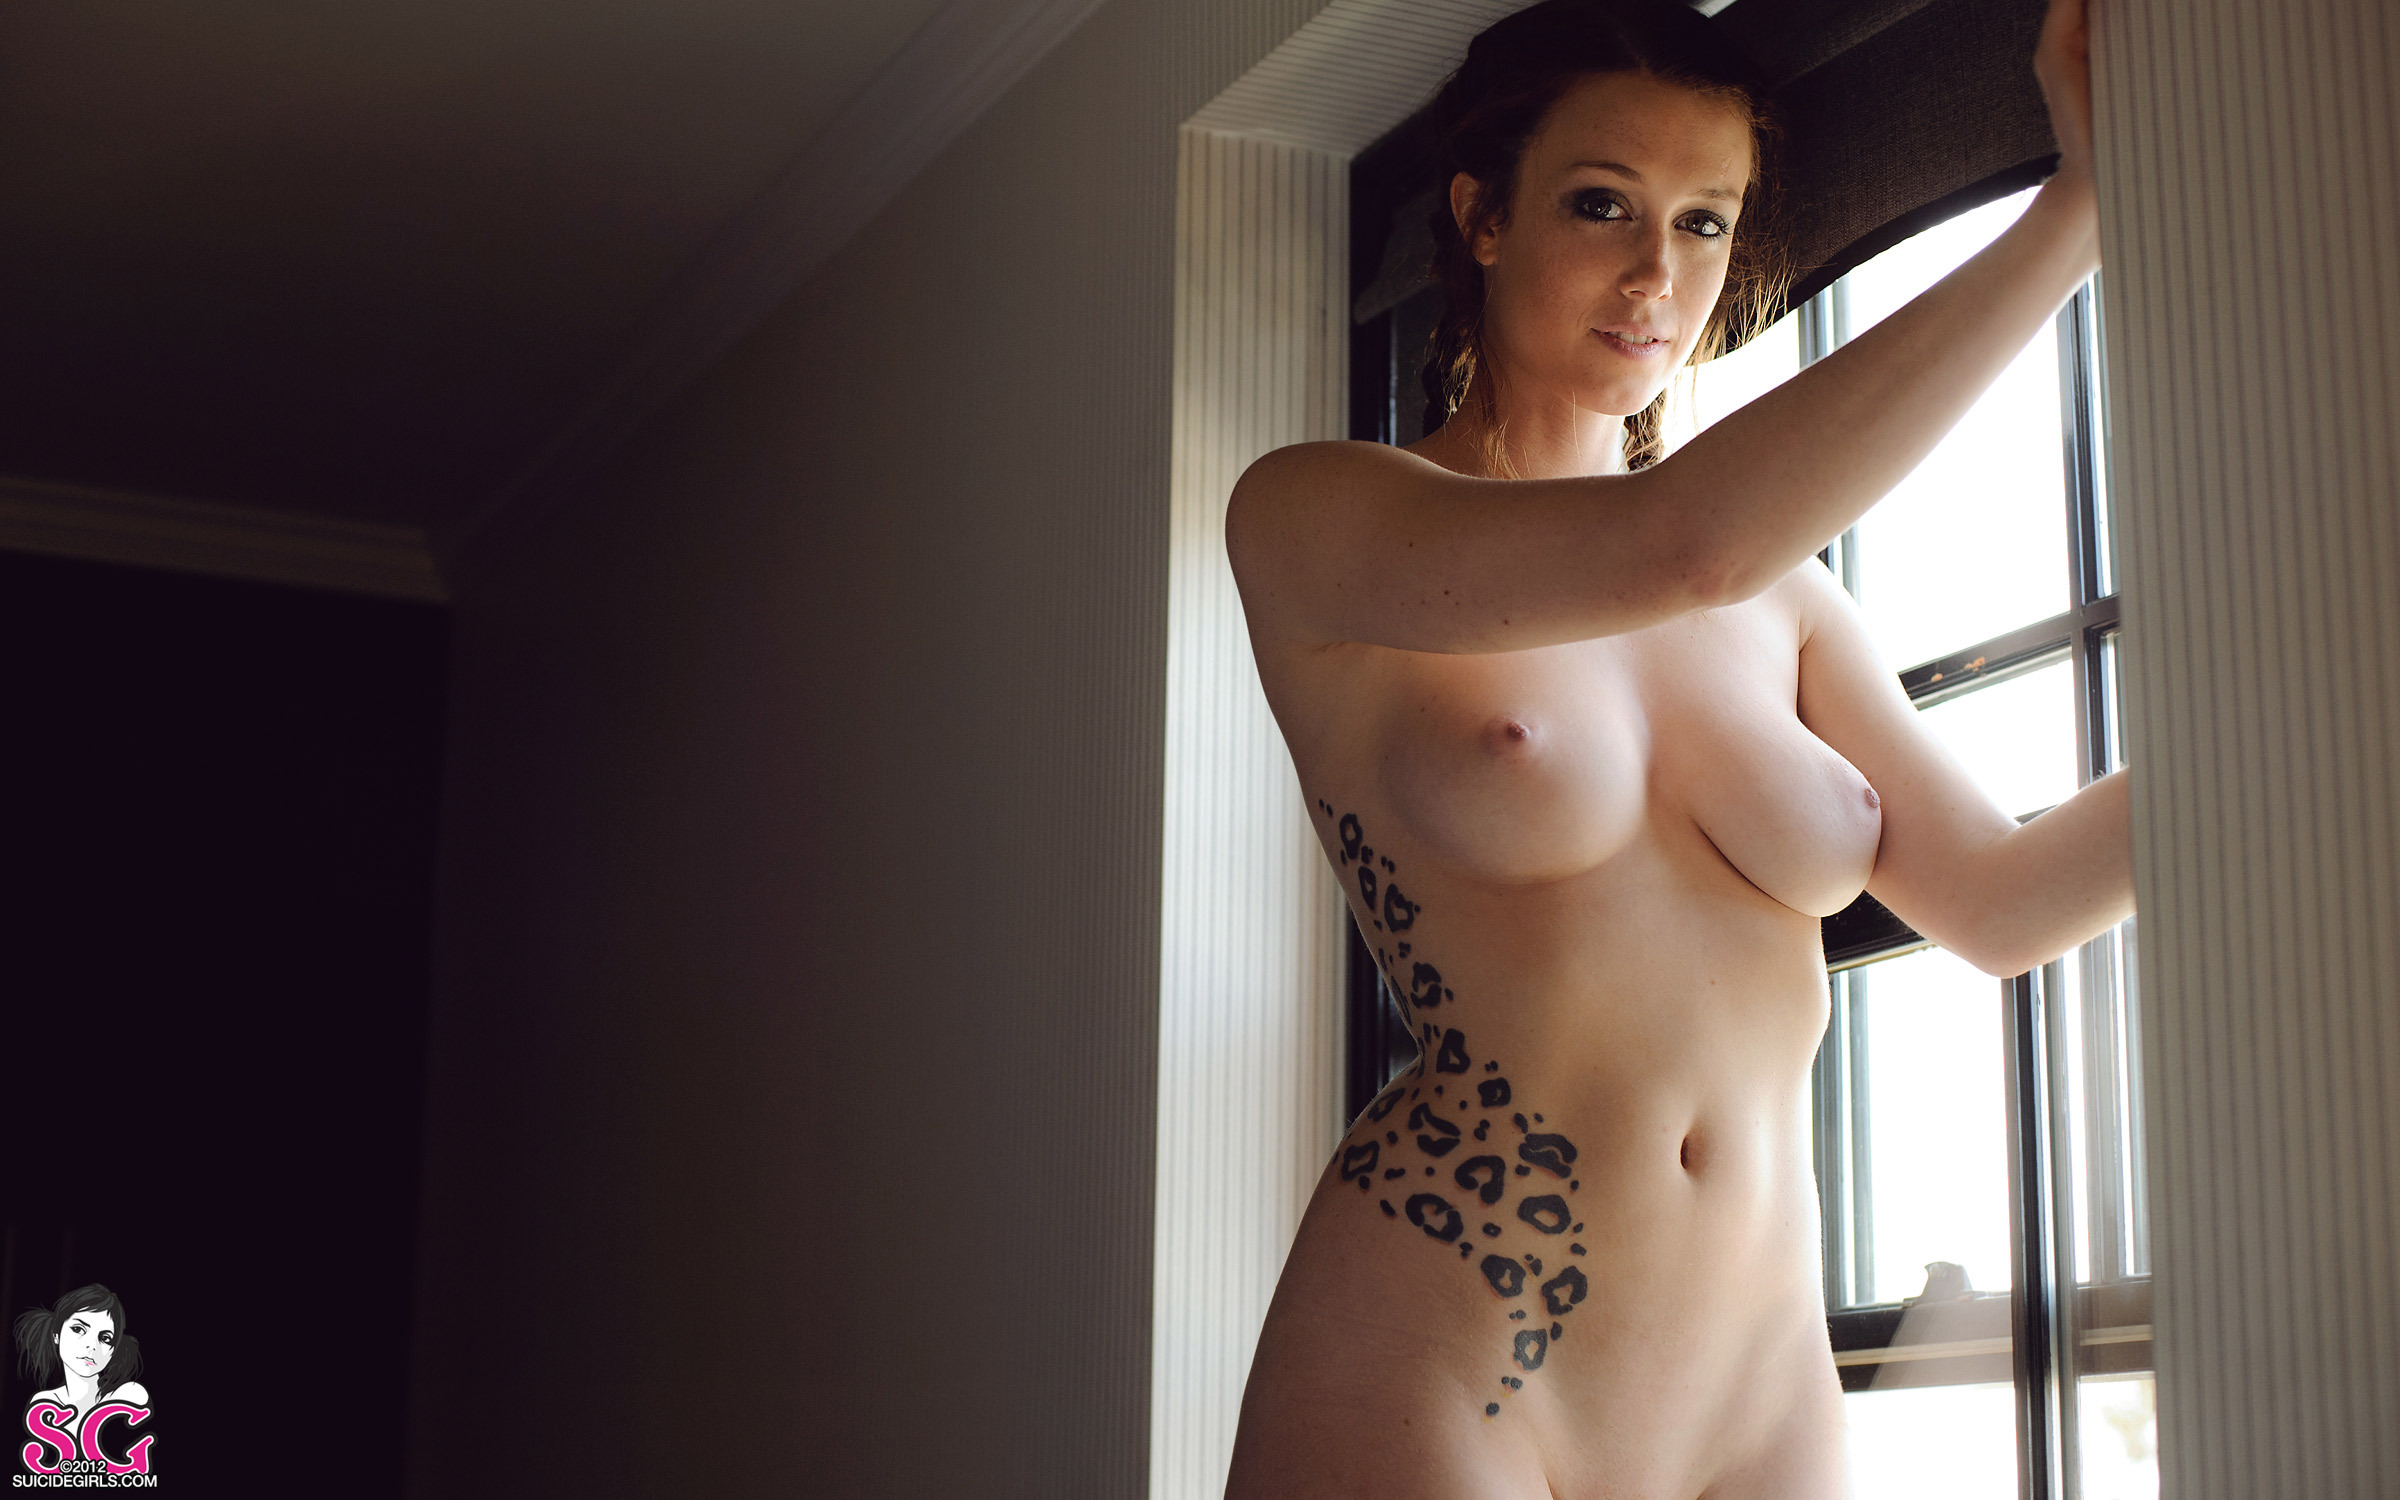 Charlotte herbert chad suicide nude pussy